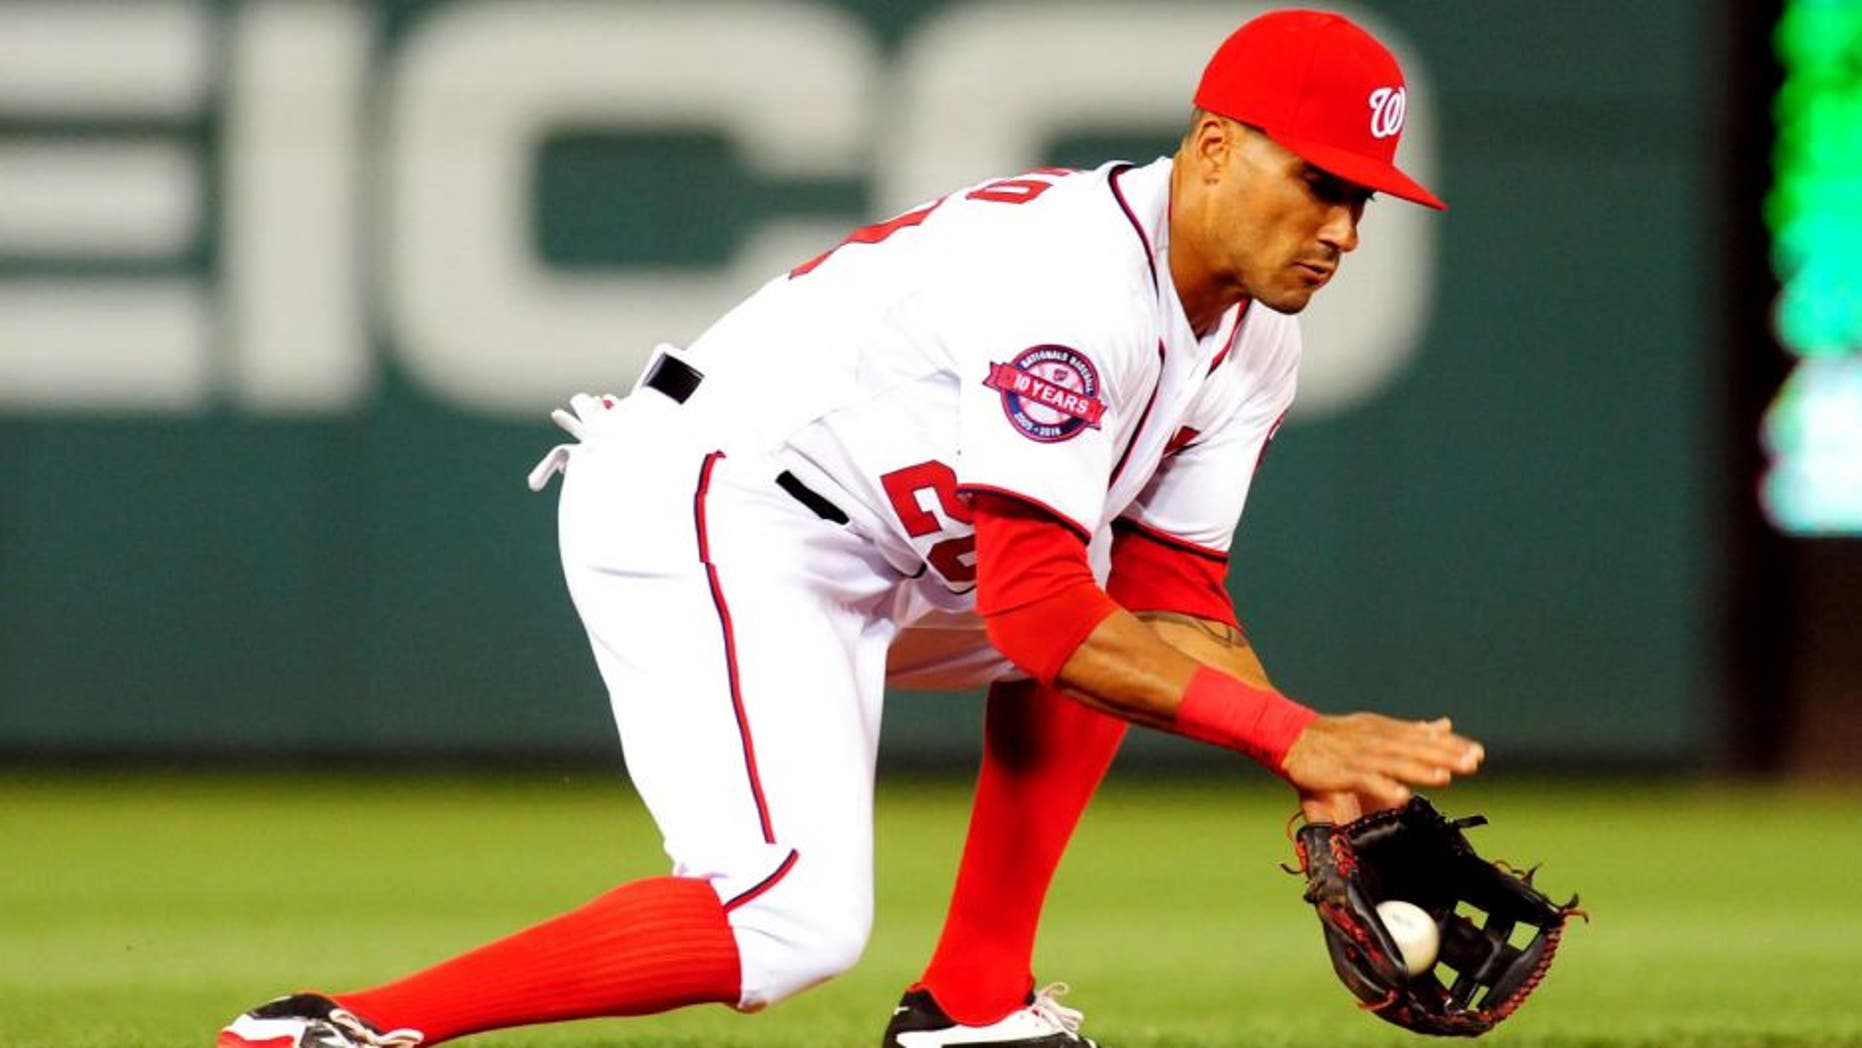 Apr 16, 2015; Washington, DC, USA; Washington Nationals shortstop Ian Desmond (20) fields a ground ball during the game against the Philadelphia Phillies at Nationals Park. The Nationals won 5-2. Mandatory Credit: Evan Habeeb-USA TODAY Sports